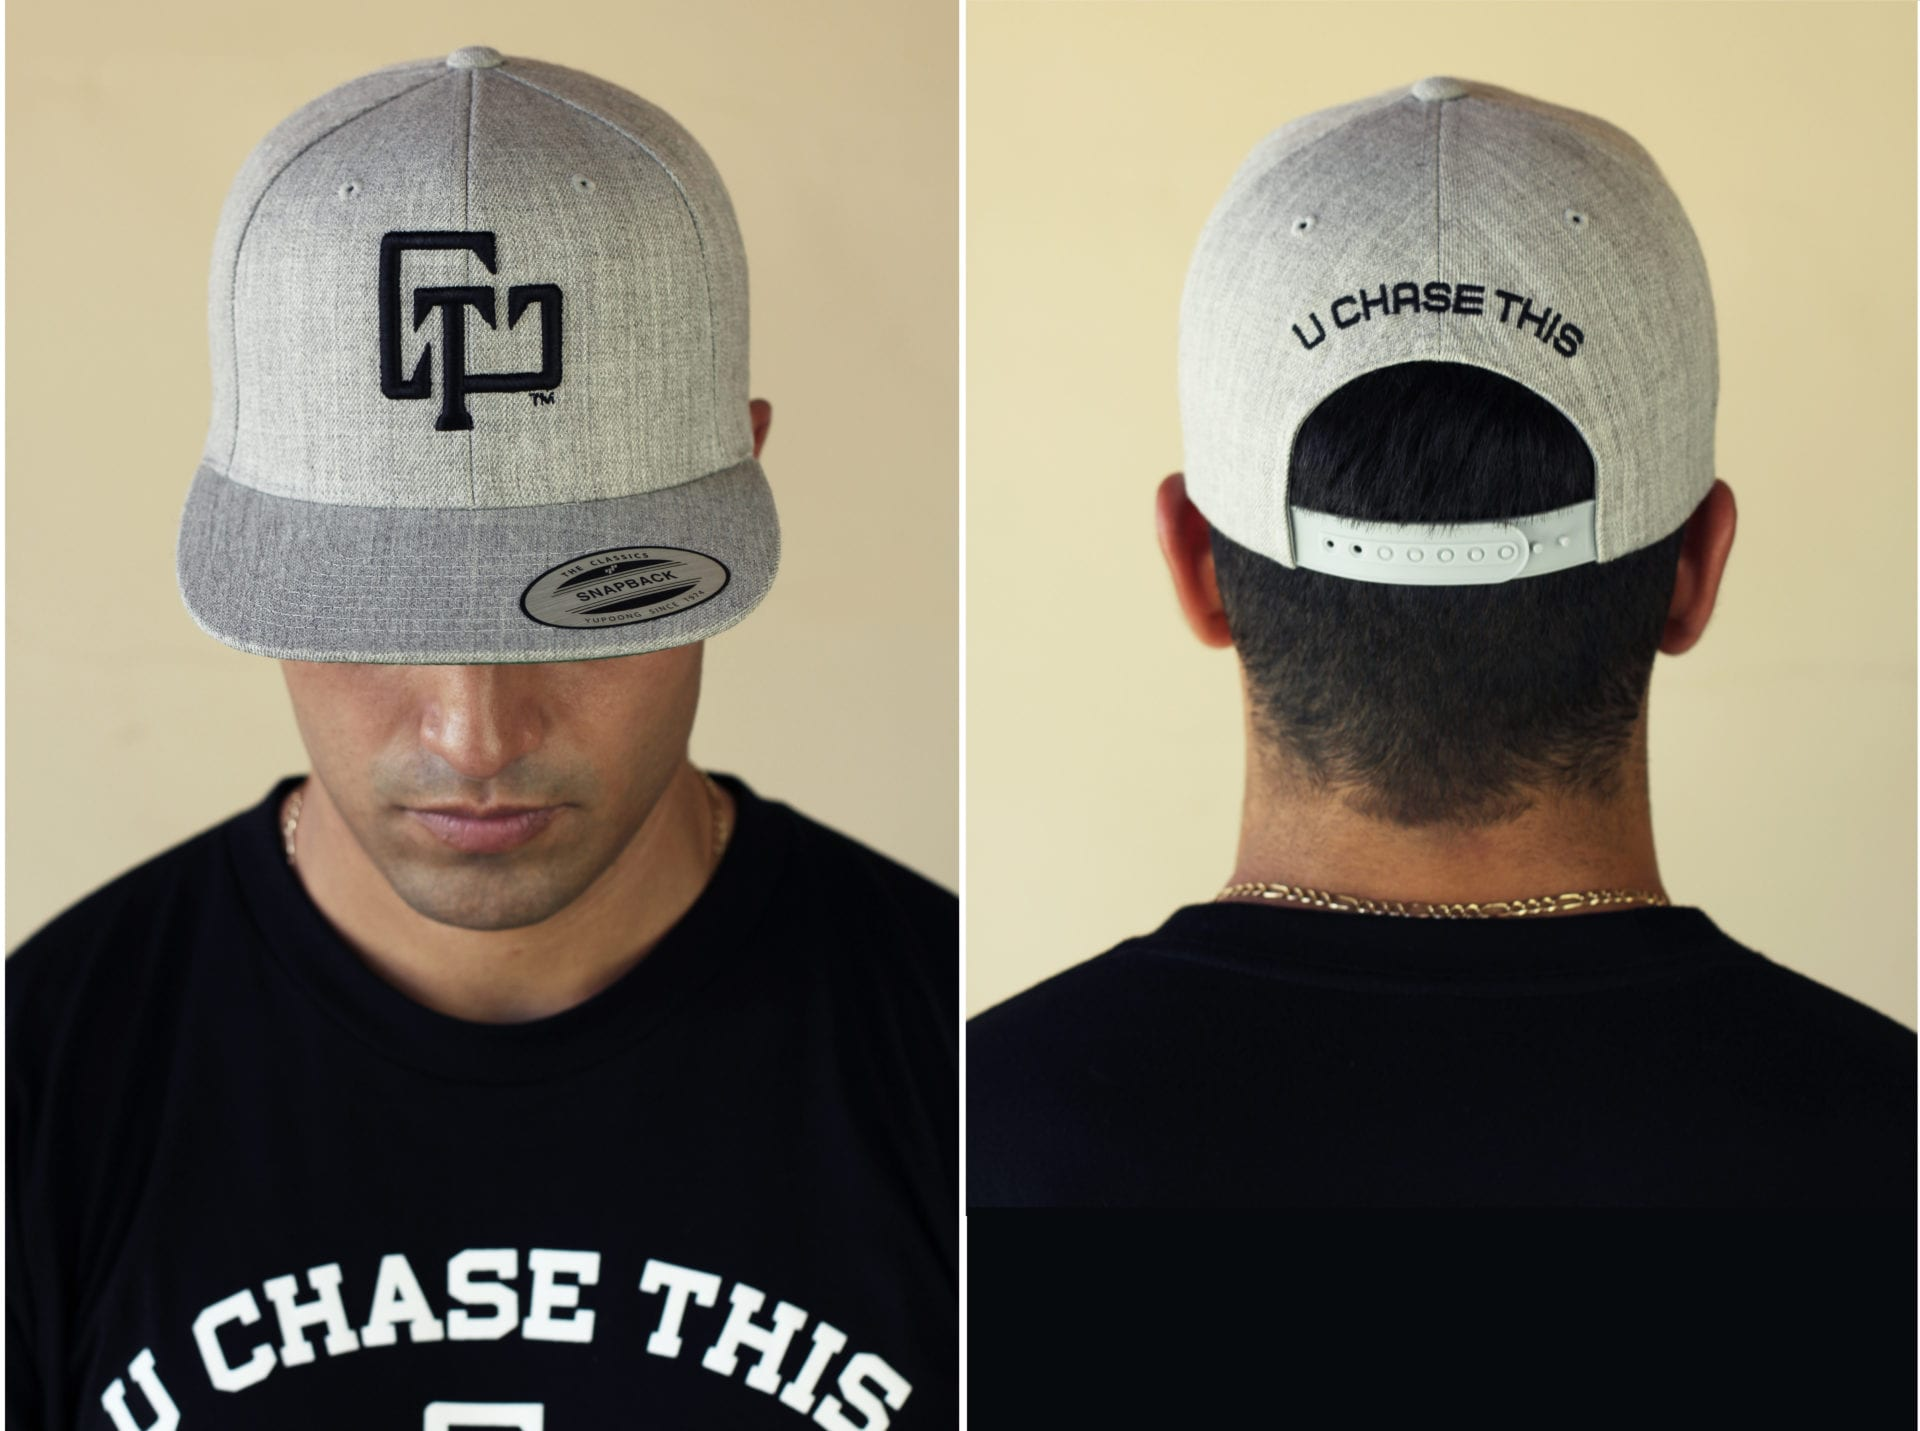 A man wearing a U Chase This baseball cap and t-shirt